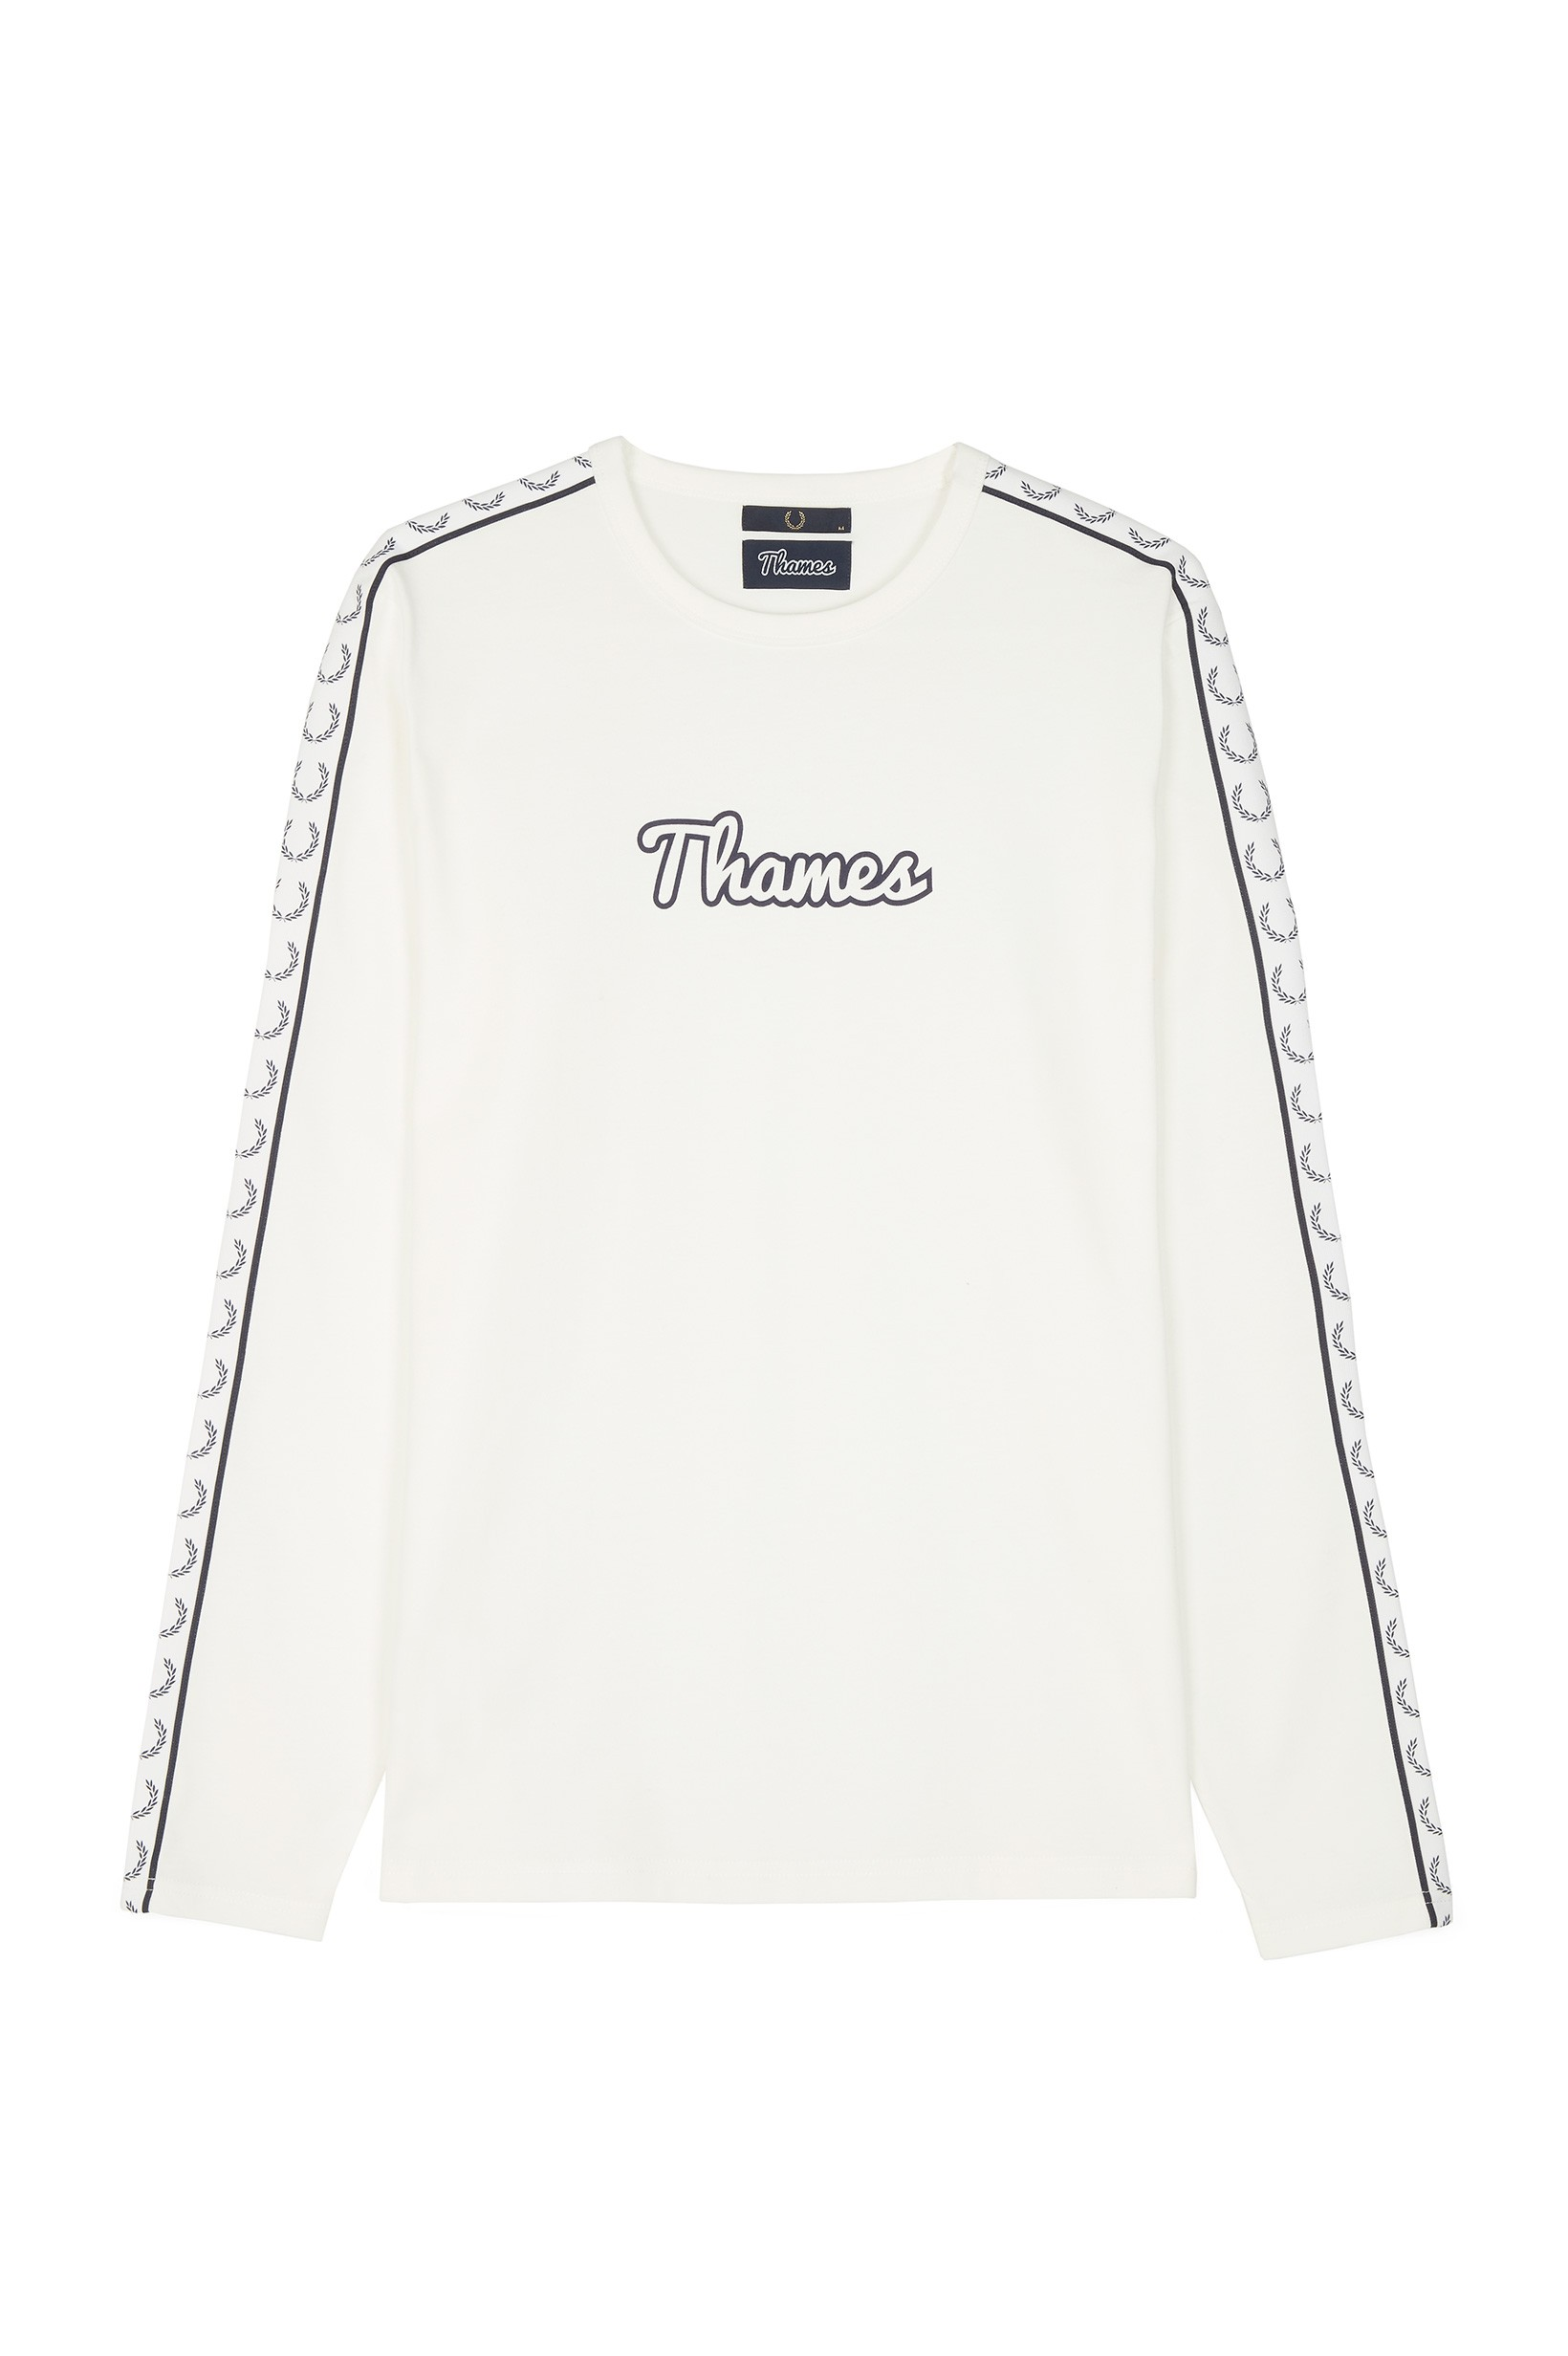 Fred Perry Snow White Thames Long Sleeve Ringer T-Shirt